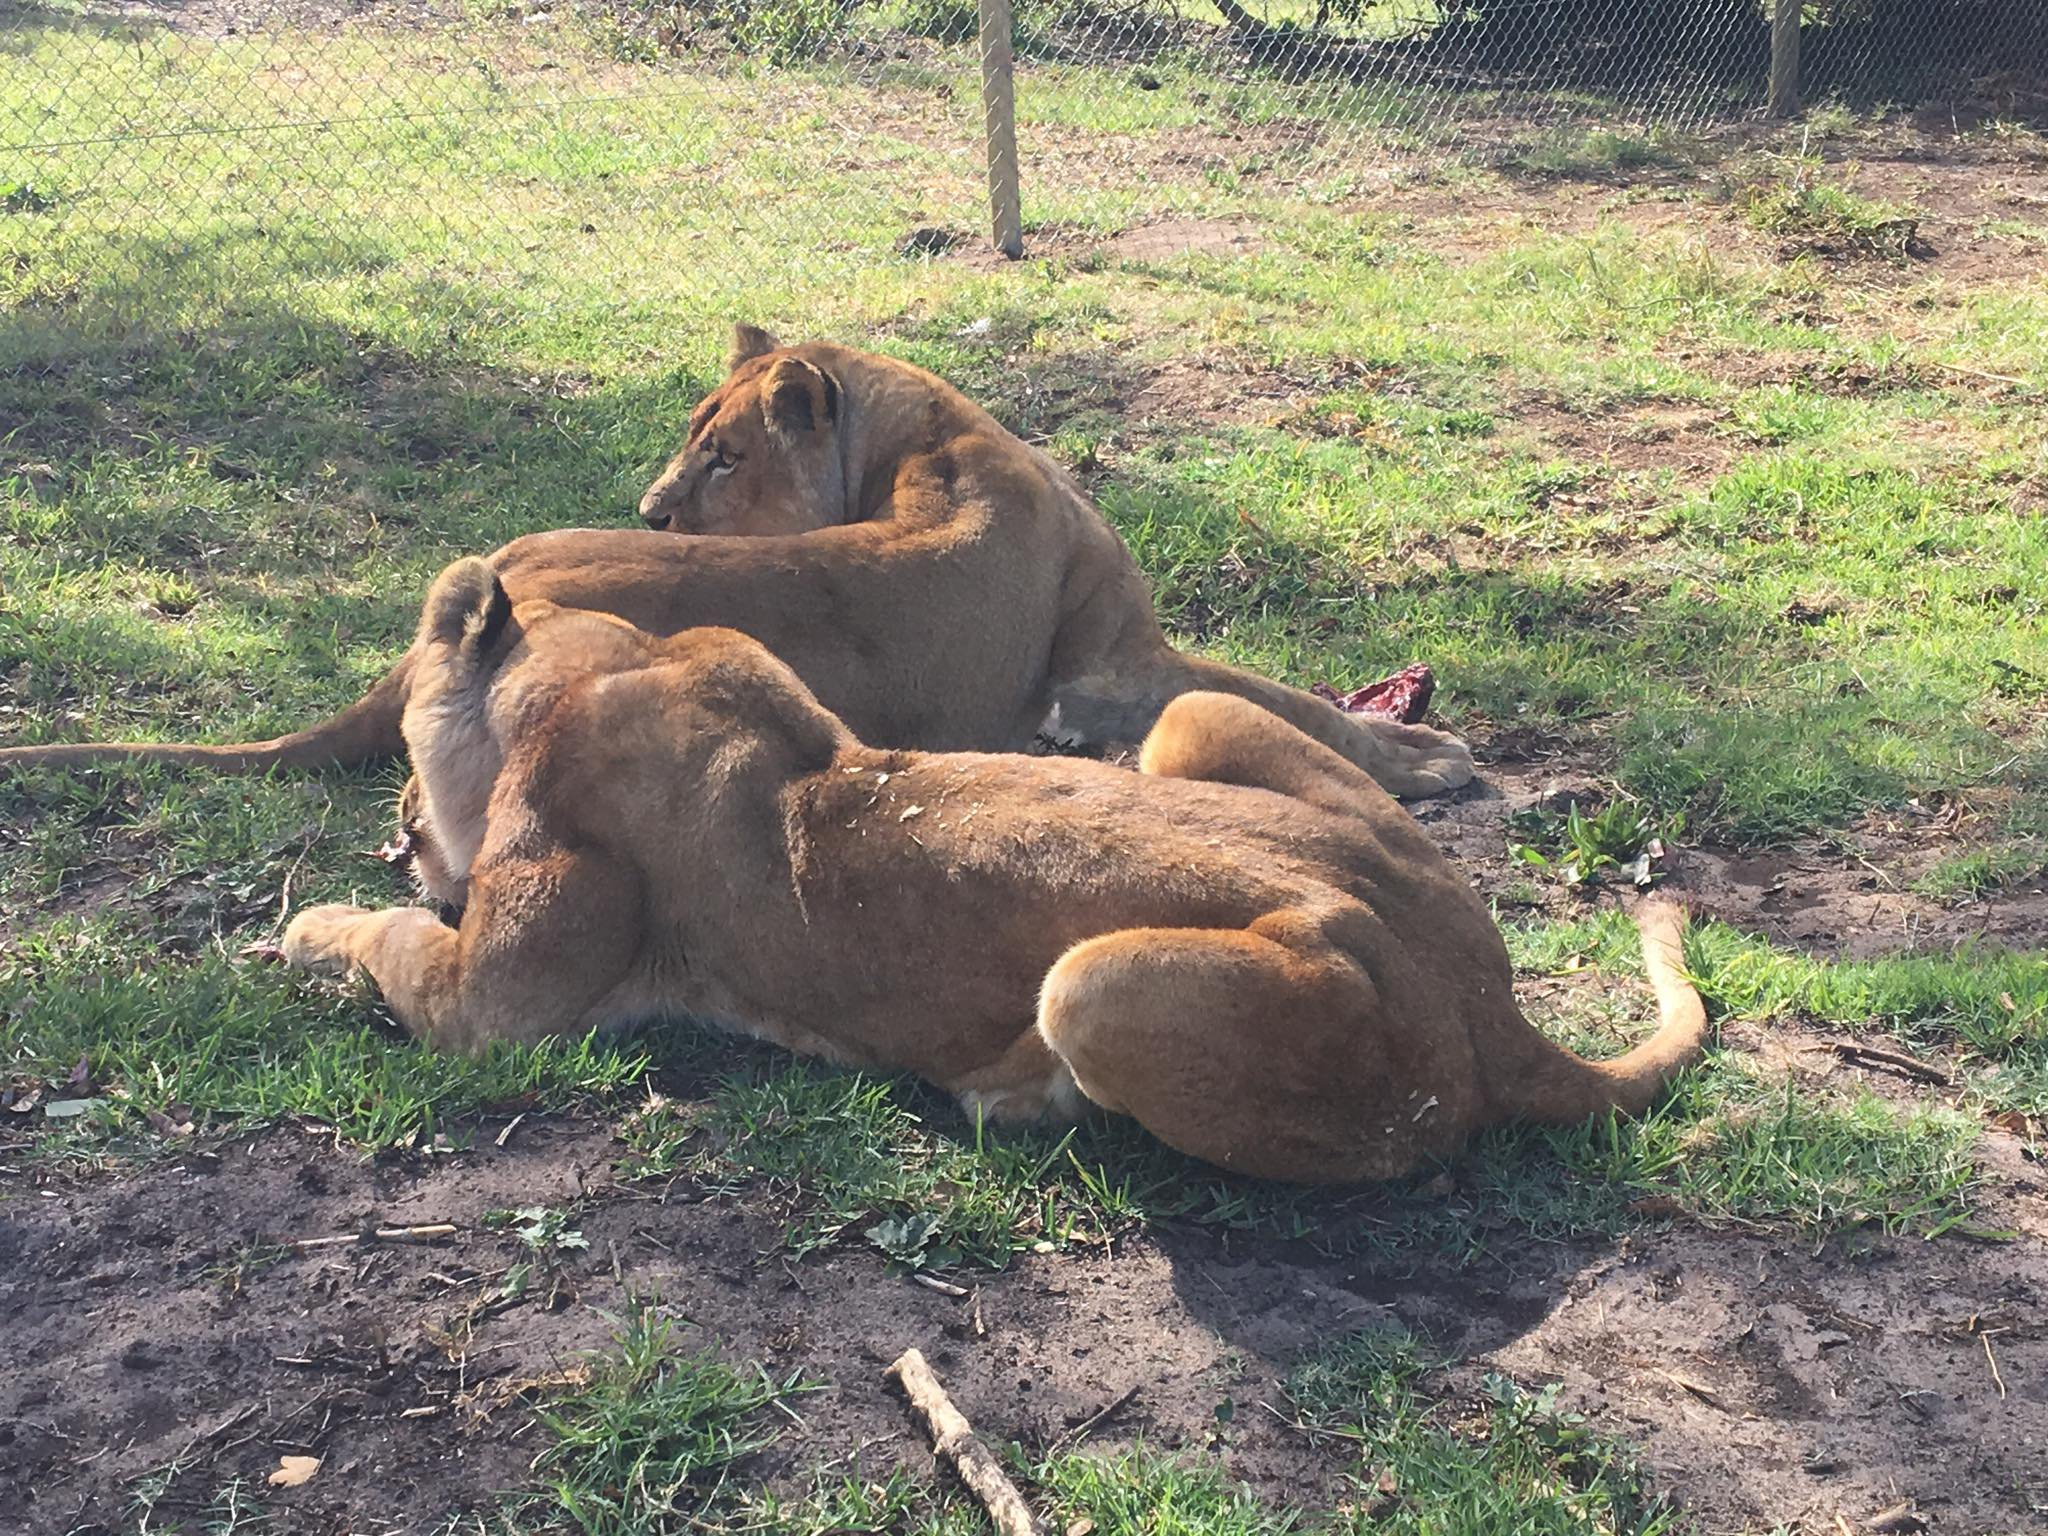 (Picture: Yvette Taylor/Facebook) Four lions who were born into freezing captivity in a circus in Ukraine have been rescued and taken to Africa after spending three days travelling nearly 8,000 miles by car and plane - where they even enjoyed an adorable snooze together. After the 76-hour journey from crate to enclosure, the big cats arrived in South Africa, where they took their first steps of freedom today. Lioness twins Charlie and Kai, four, and their younger sister Luca, three, have only ever known bars and cages since being born into the circus.